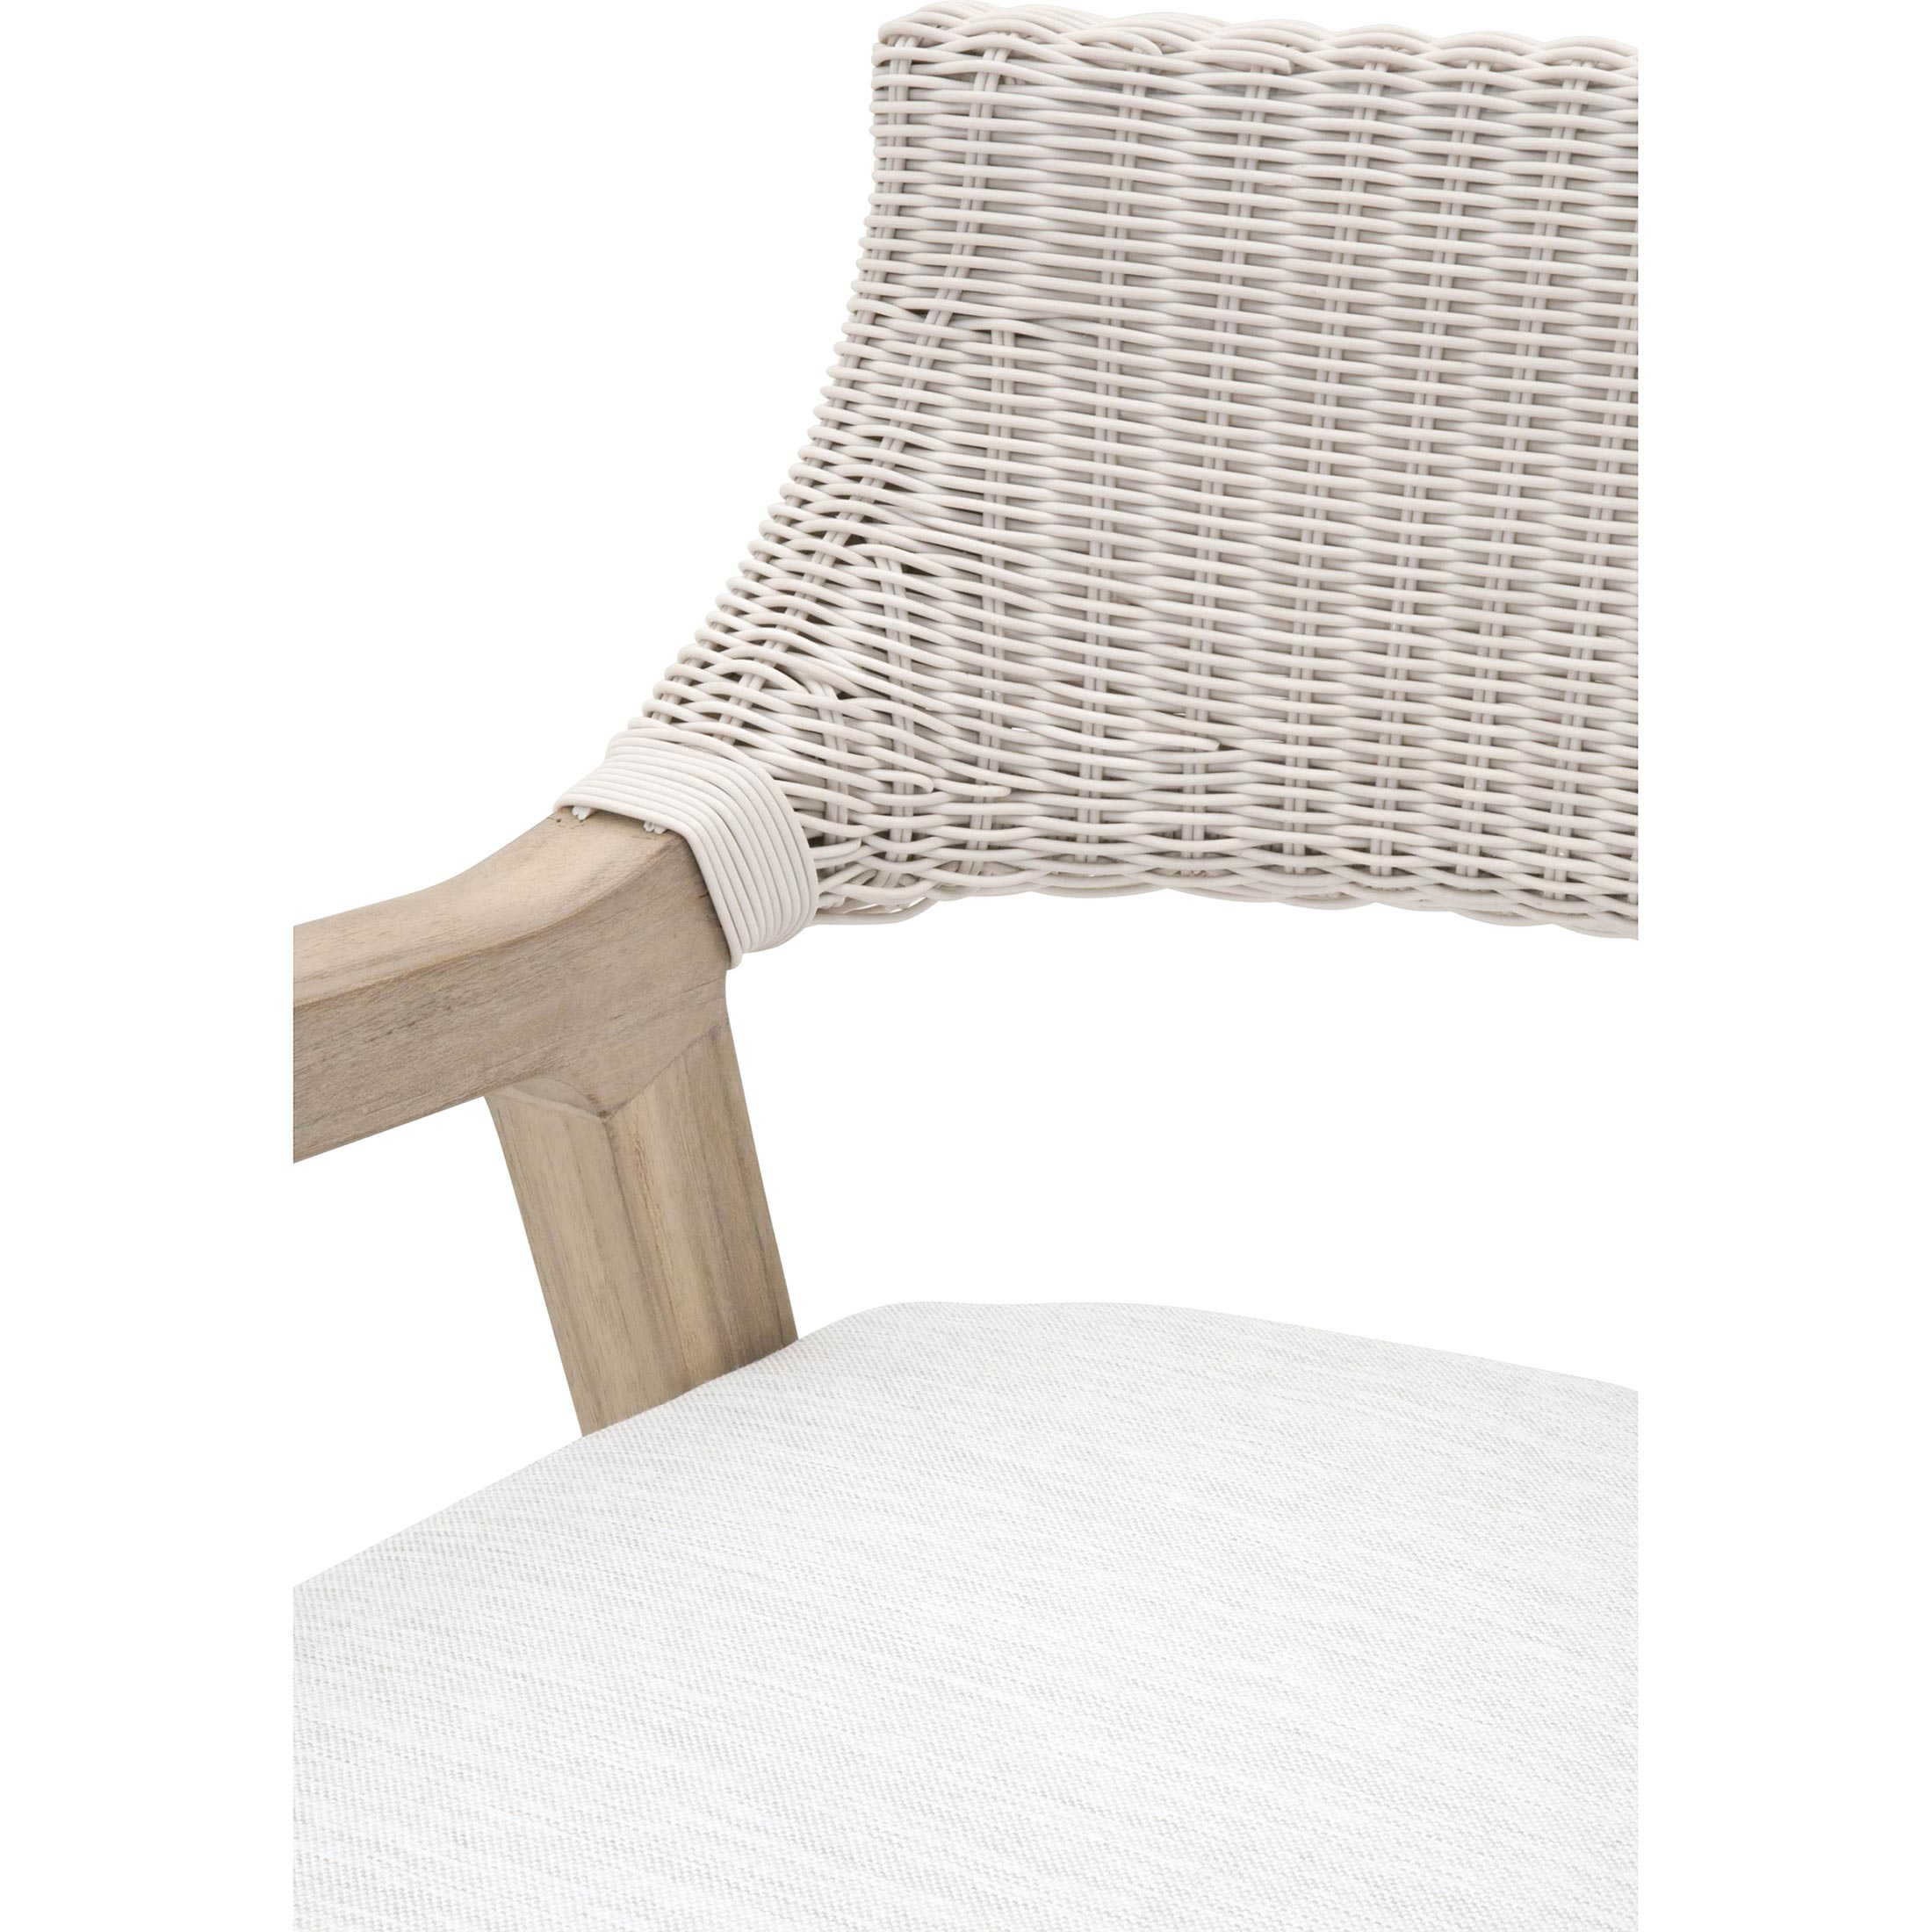 Lucile Modern Classic Woven Wicker Grey Teak Frame Outdoor Dining Chair